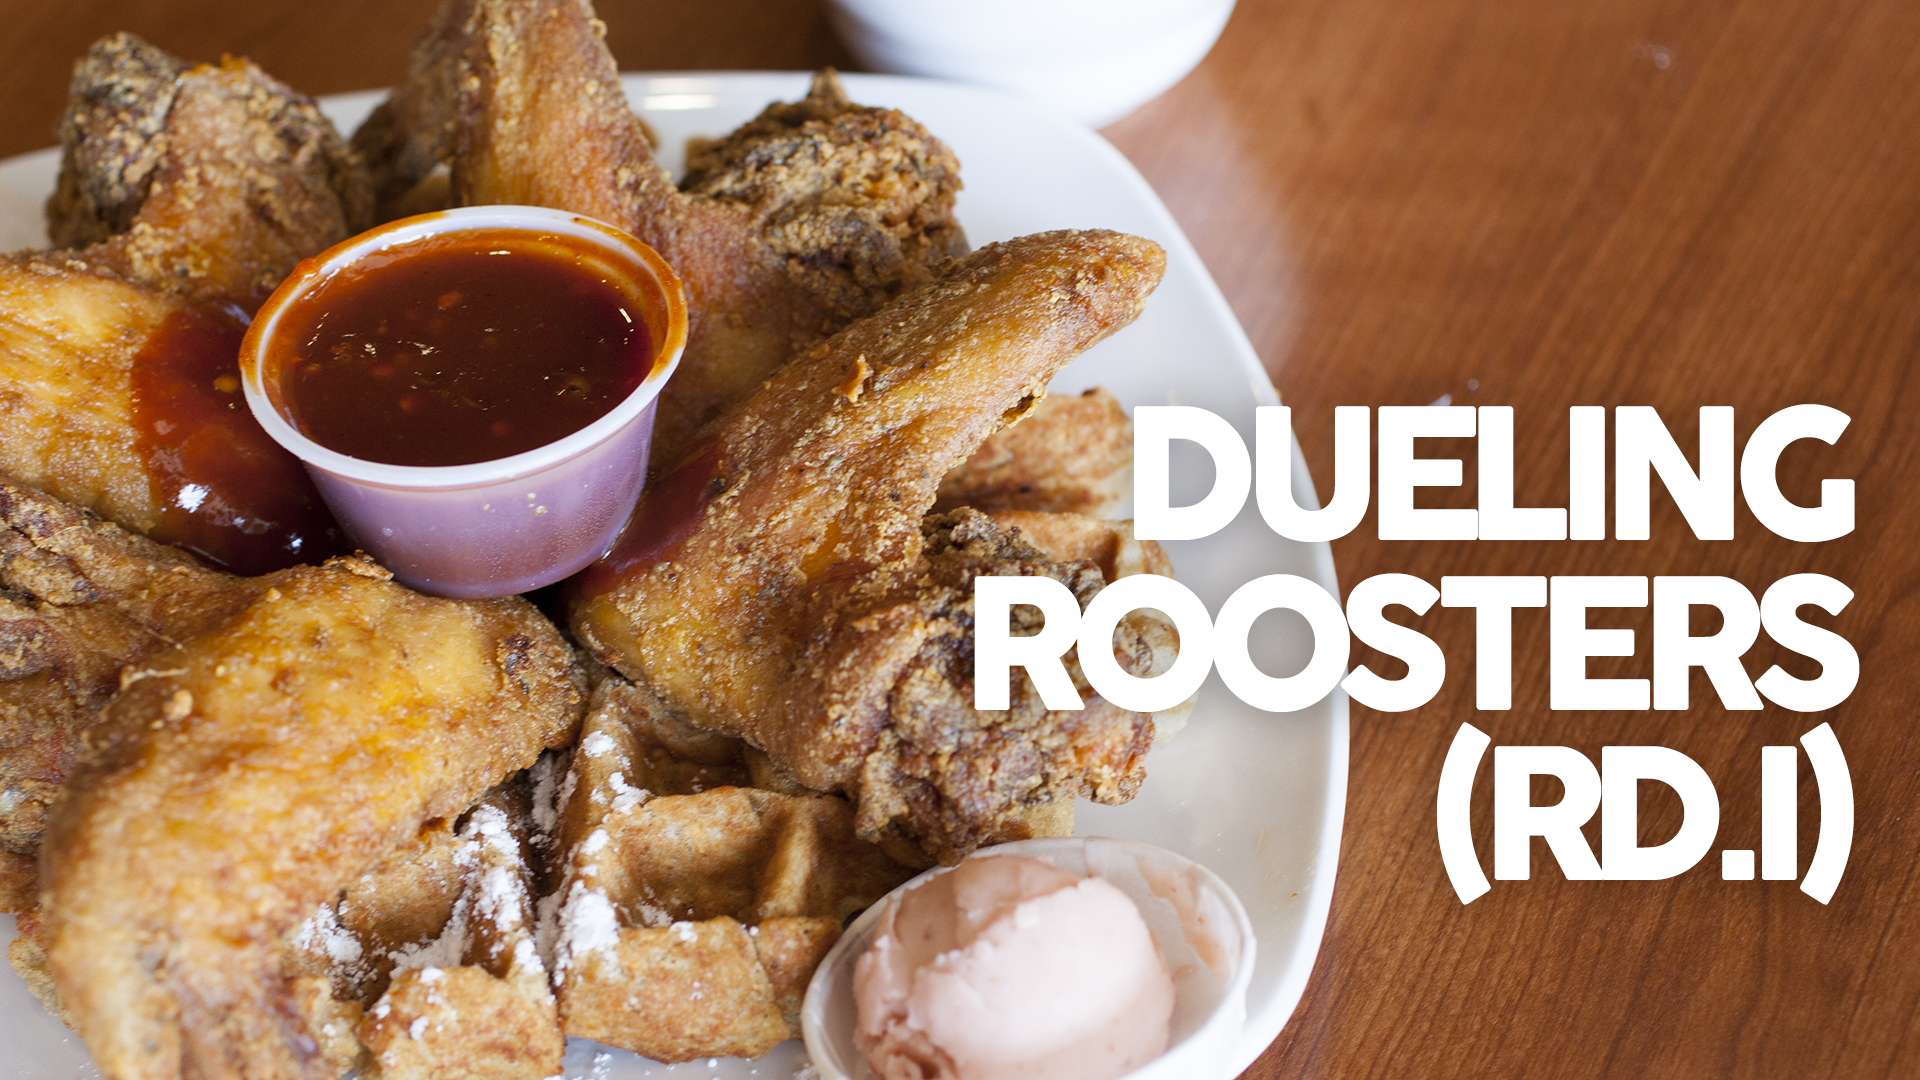 Dueling Roosters (Rd. I)